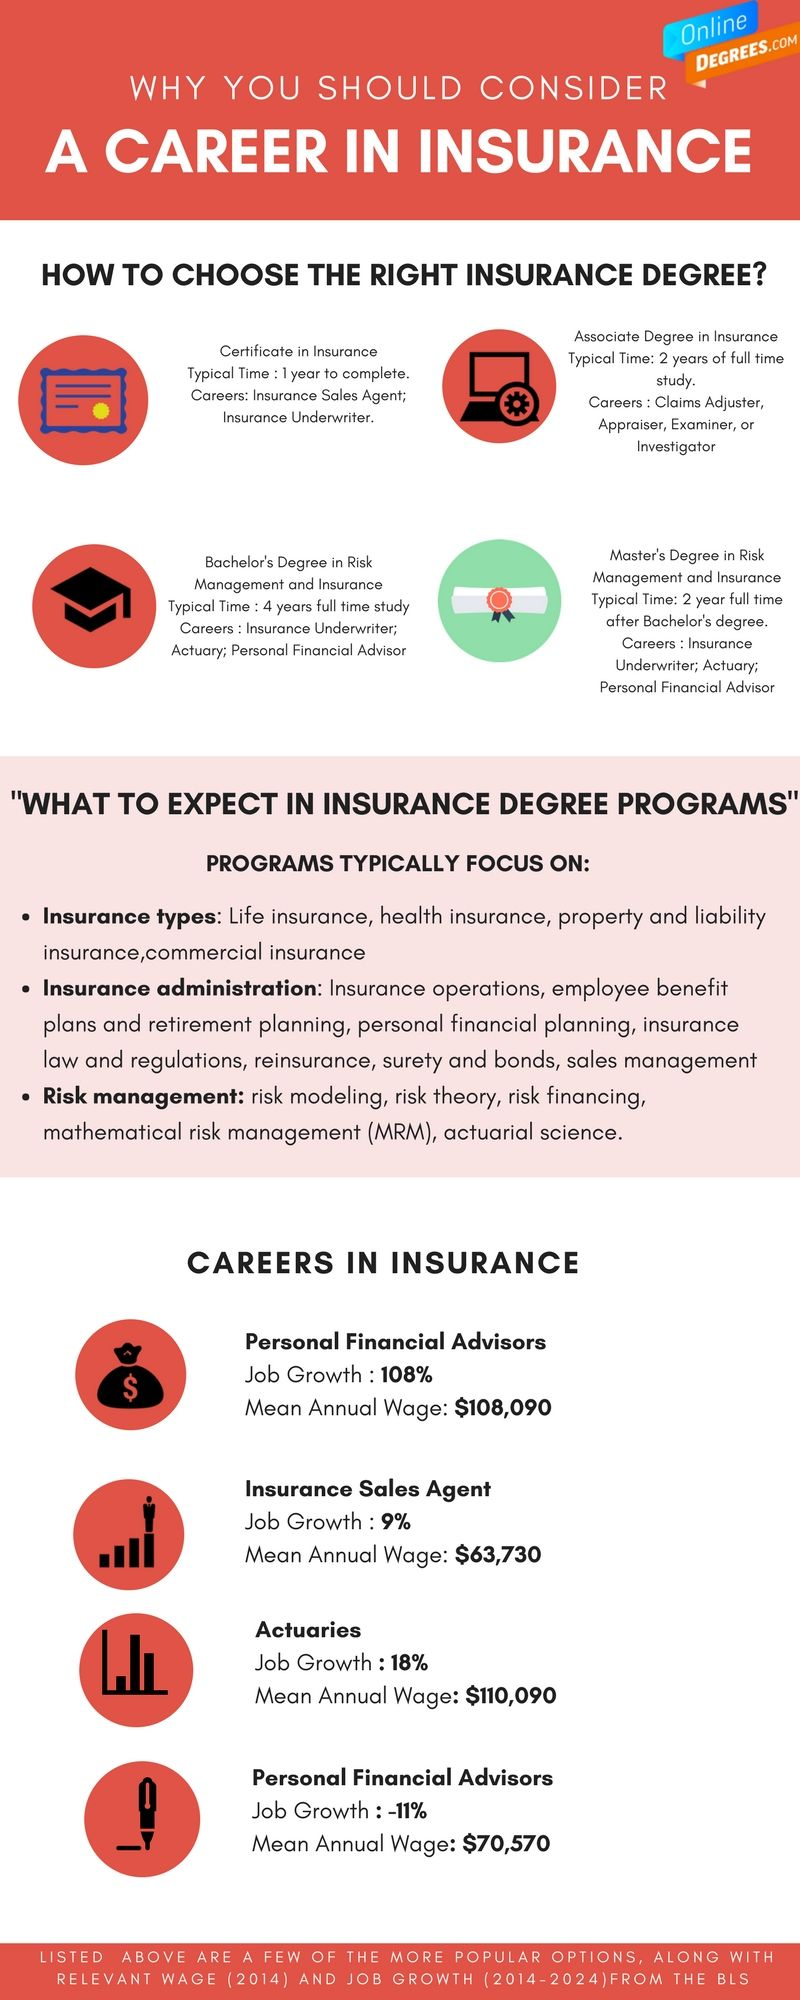 Why Choose A Career In Insurance We Have Gathered A Few Reasons